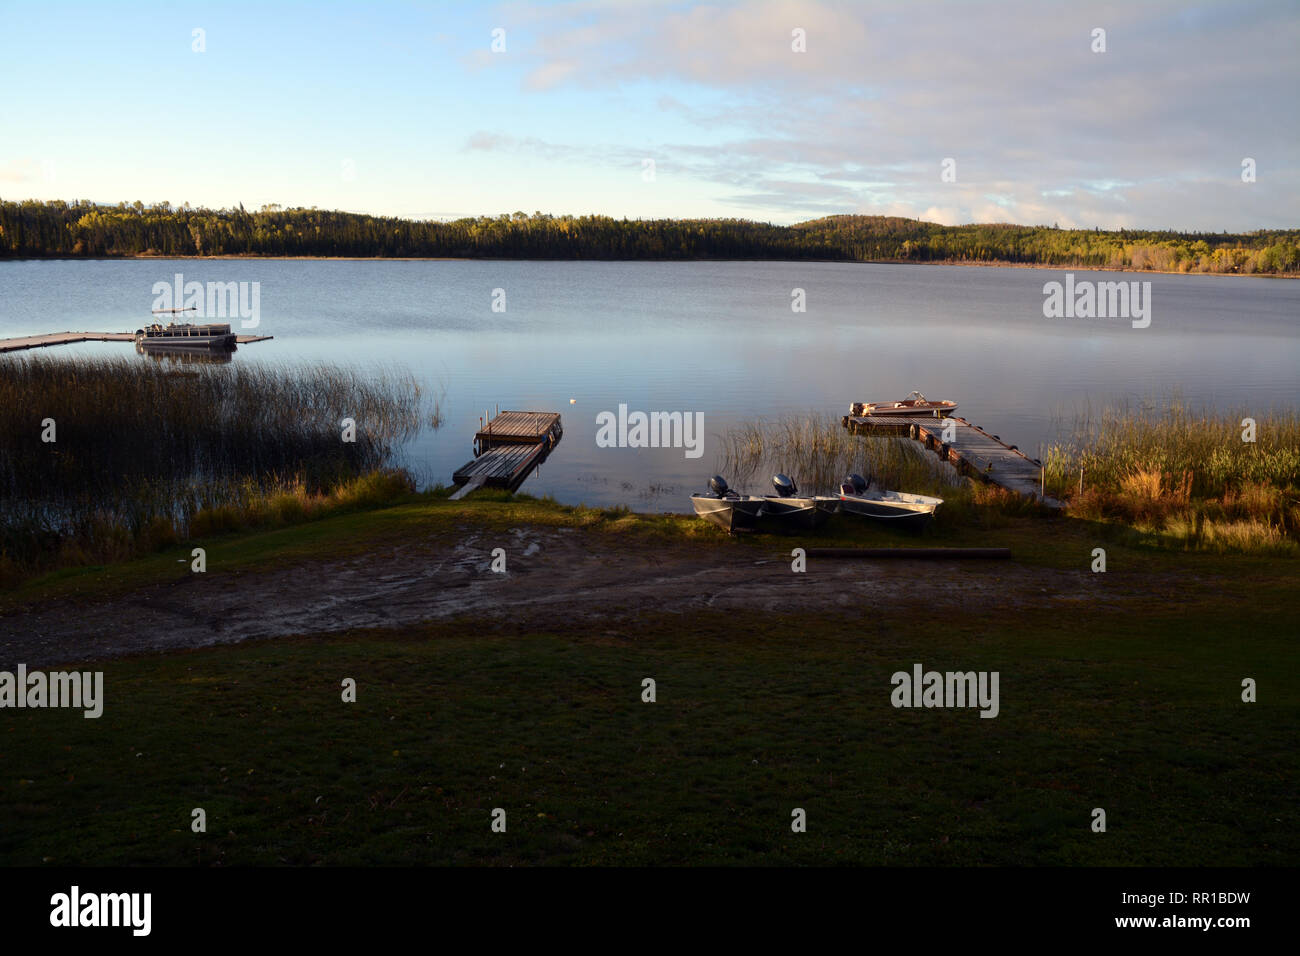 Docks and boats on the shores of Otter Lake at dawn, in the boreal forest community of Missinipe, Saskatchewan, Canada. Stock Photo